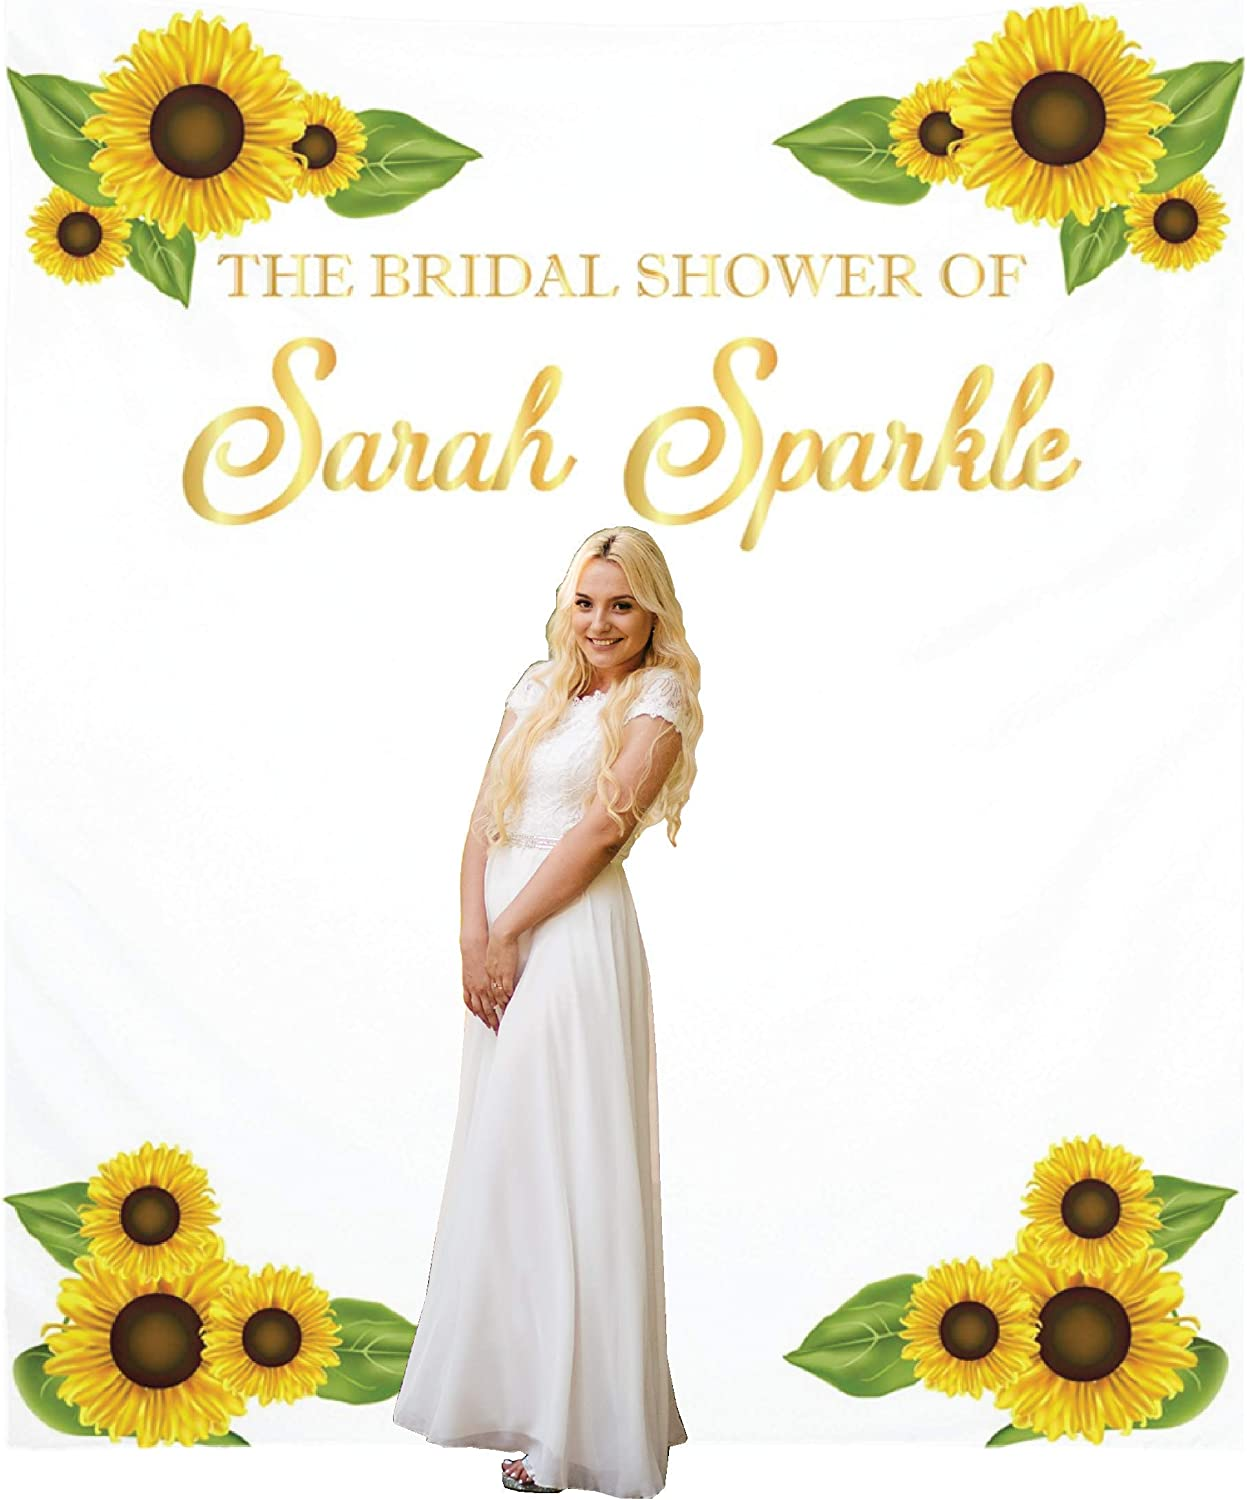 CUSTOM Wedding Backdrop Banner Floral Flower Tropical ANY TEXT Anniversary Engagement Bridal Shower Photo Booth Personal Background Sign